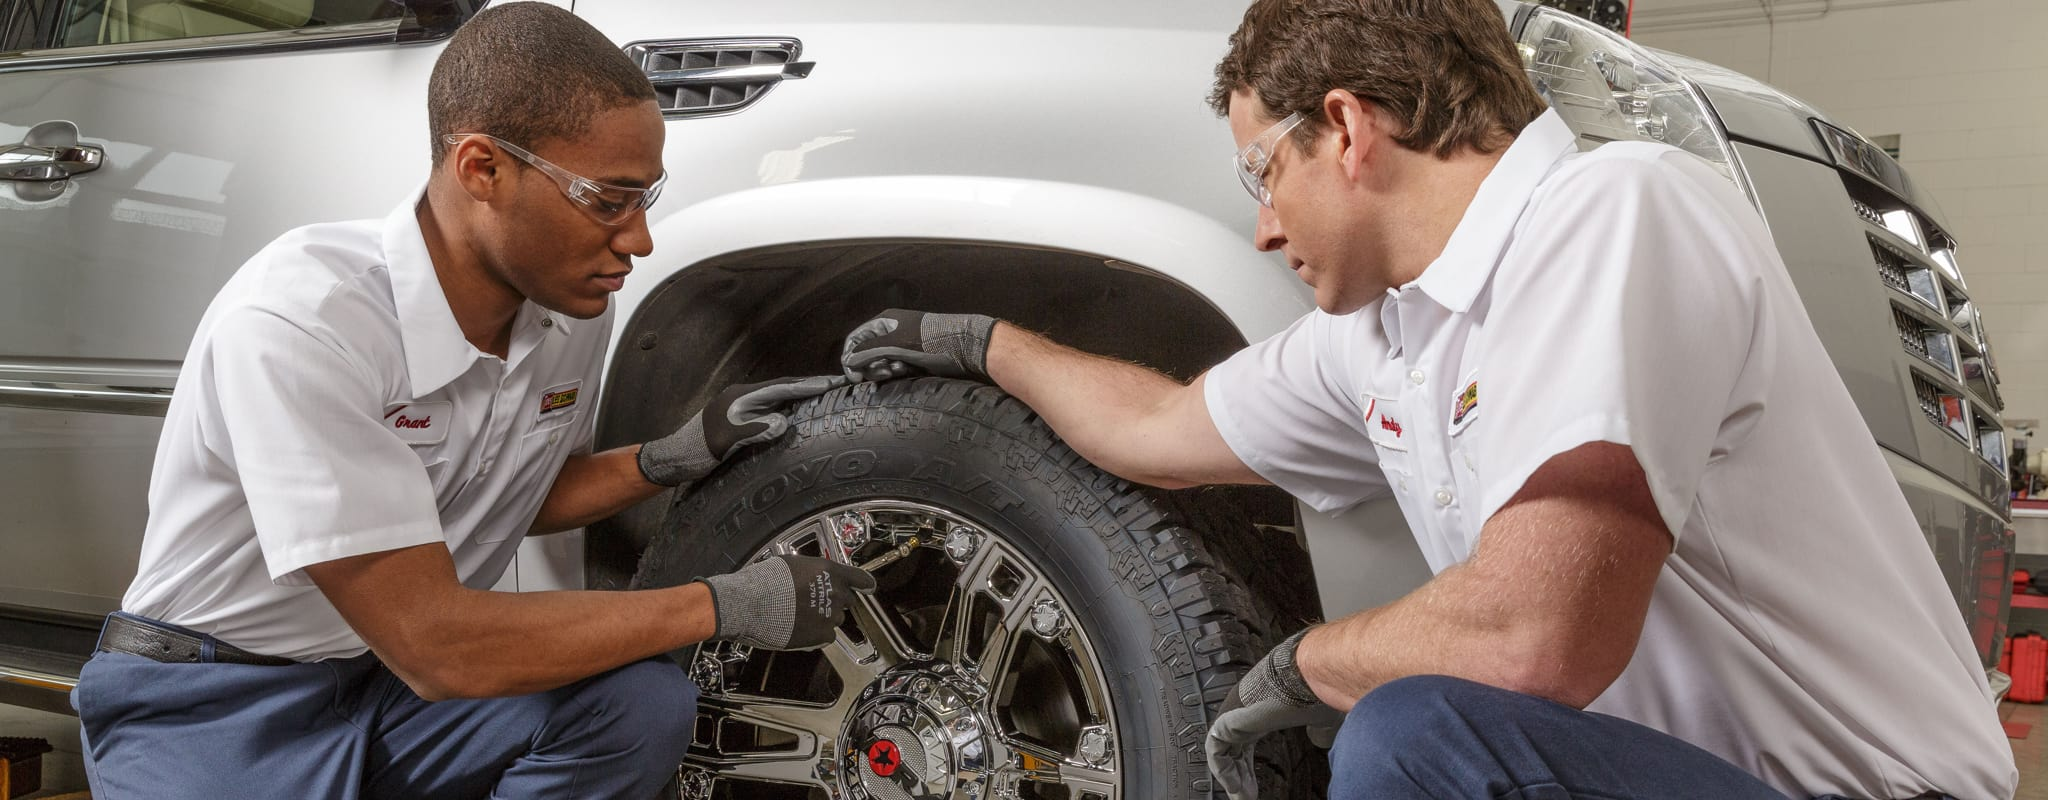 Two Les Schwab technicians examine a tire inside a garage bay.